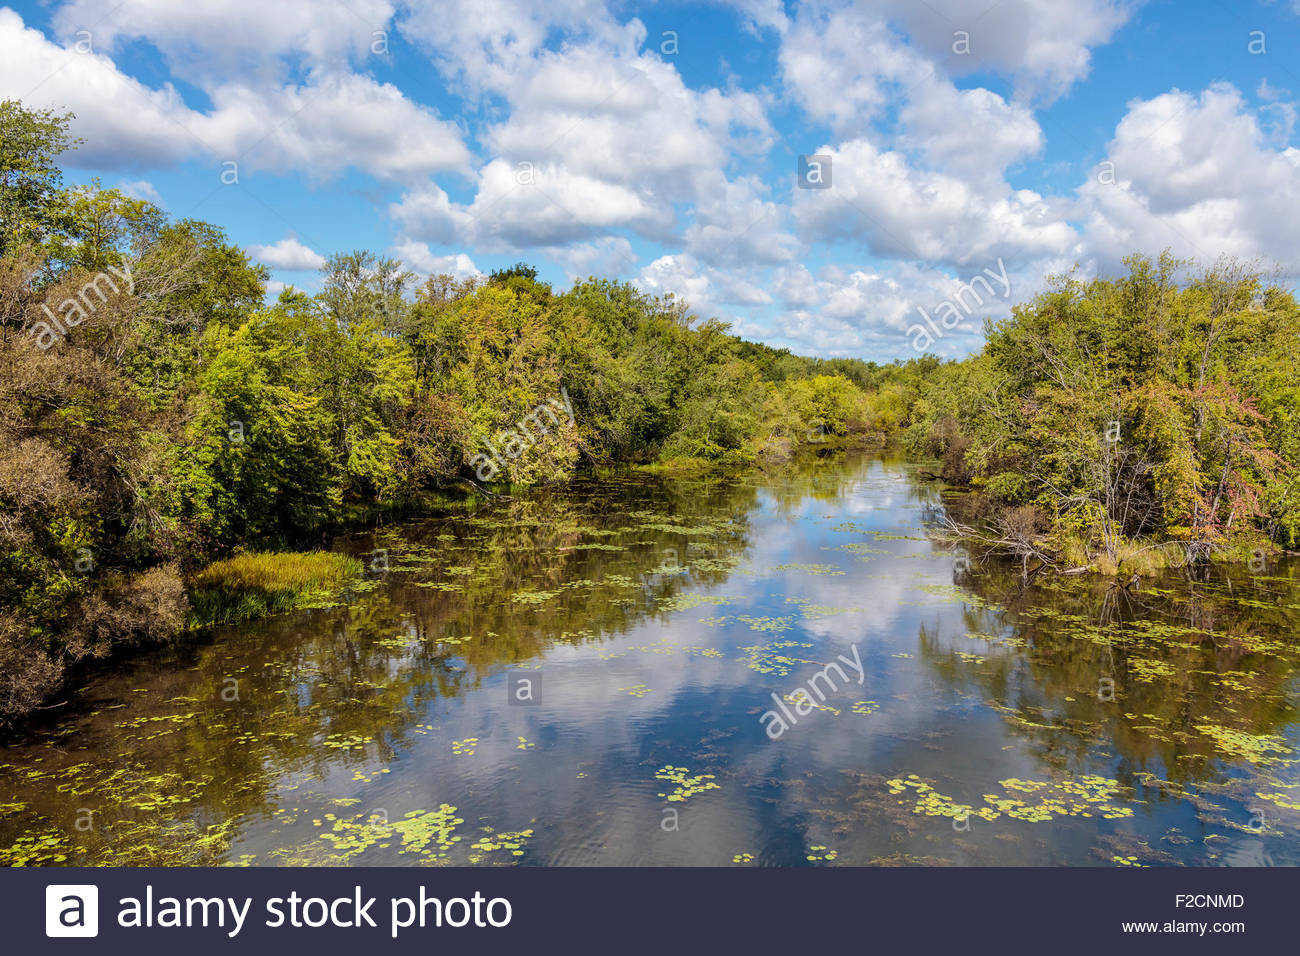 Side meander on the Otonabee River part of the historic Trent-Severn Waterway near Peterborough in Ontario Canada - Stock Image